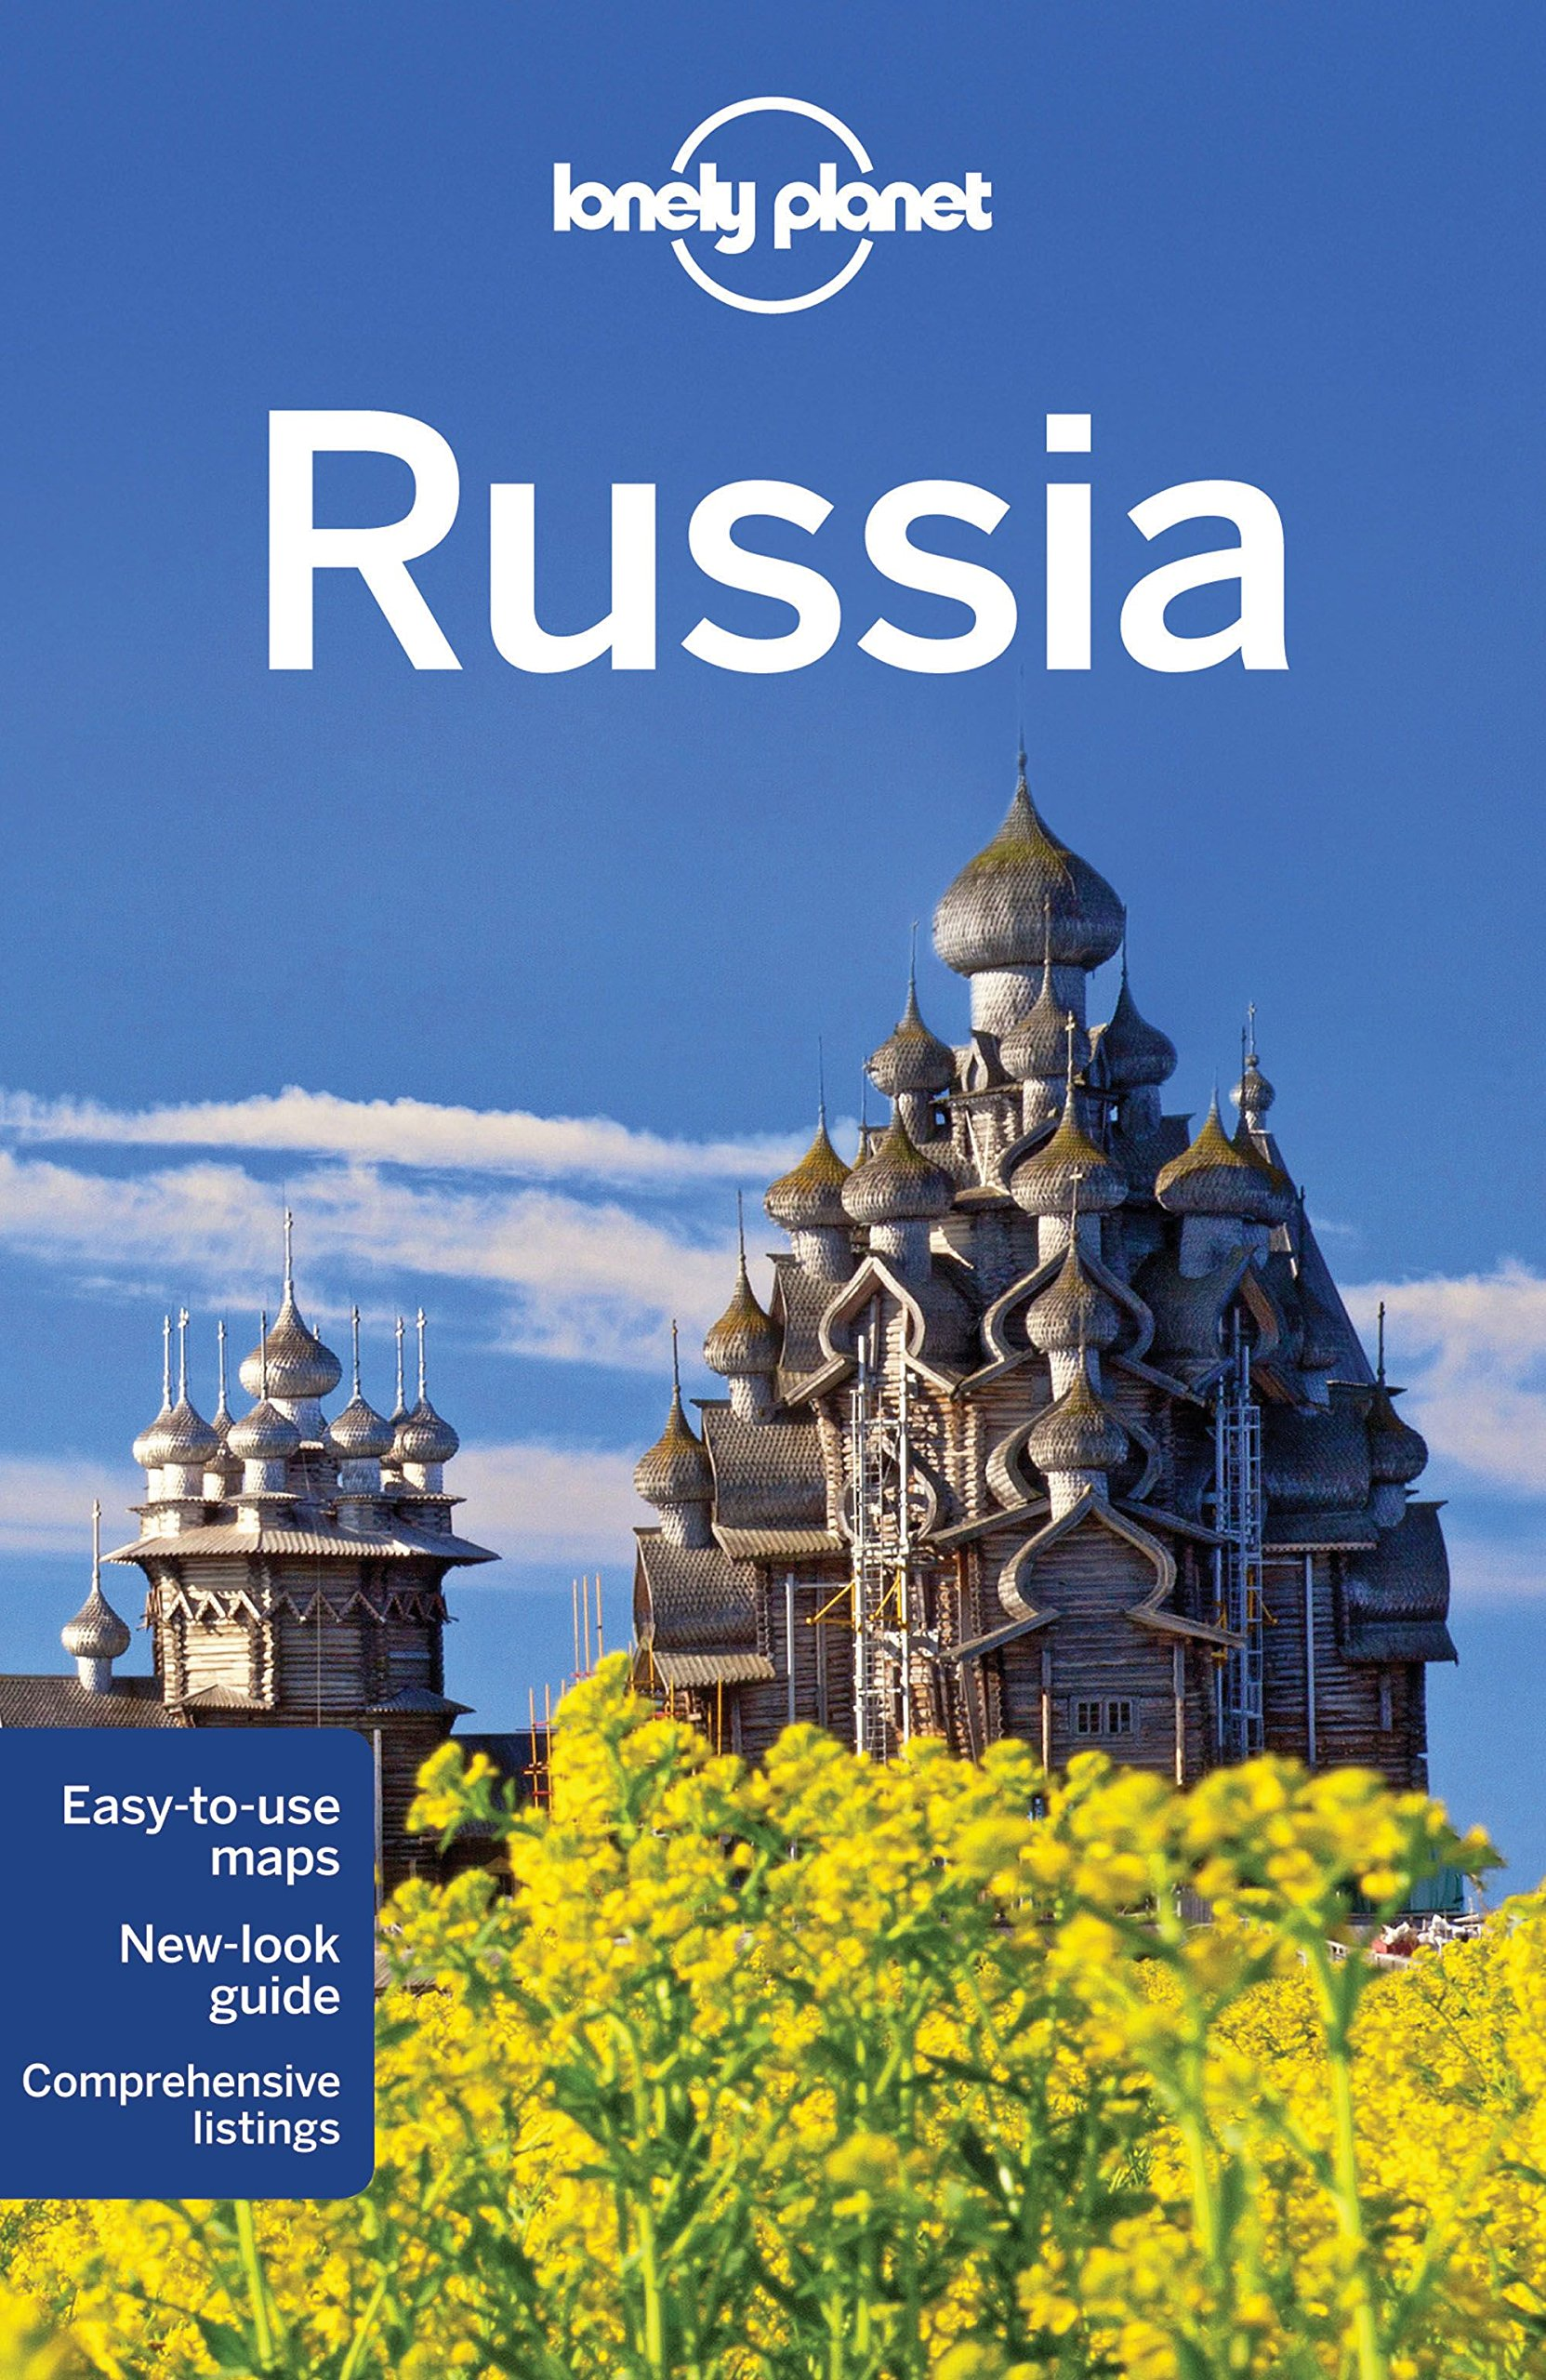 Lonely Planet Russia Travel Guide product image